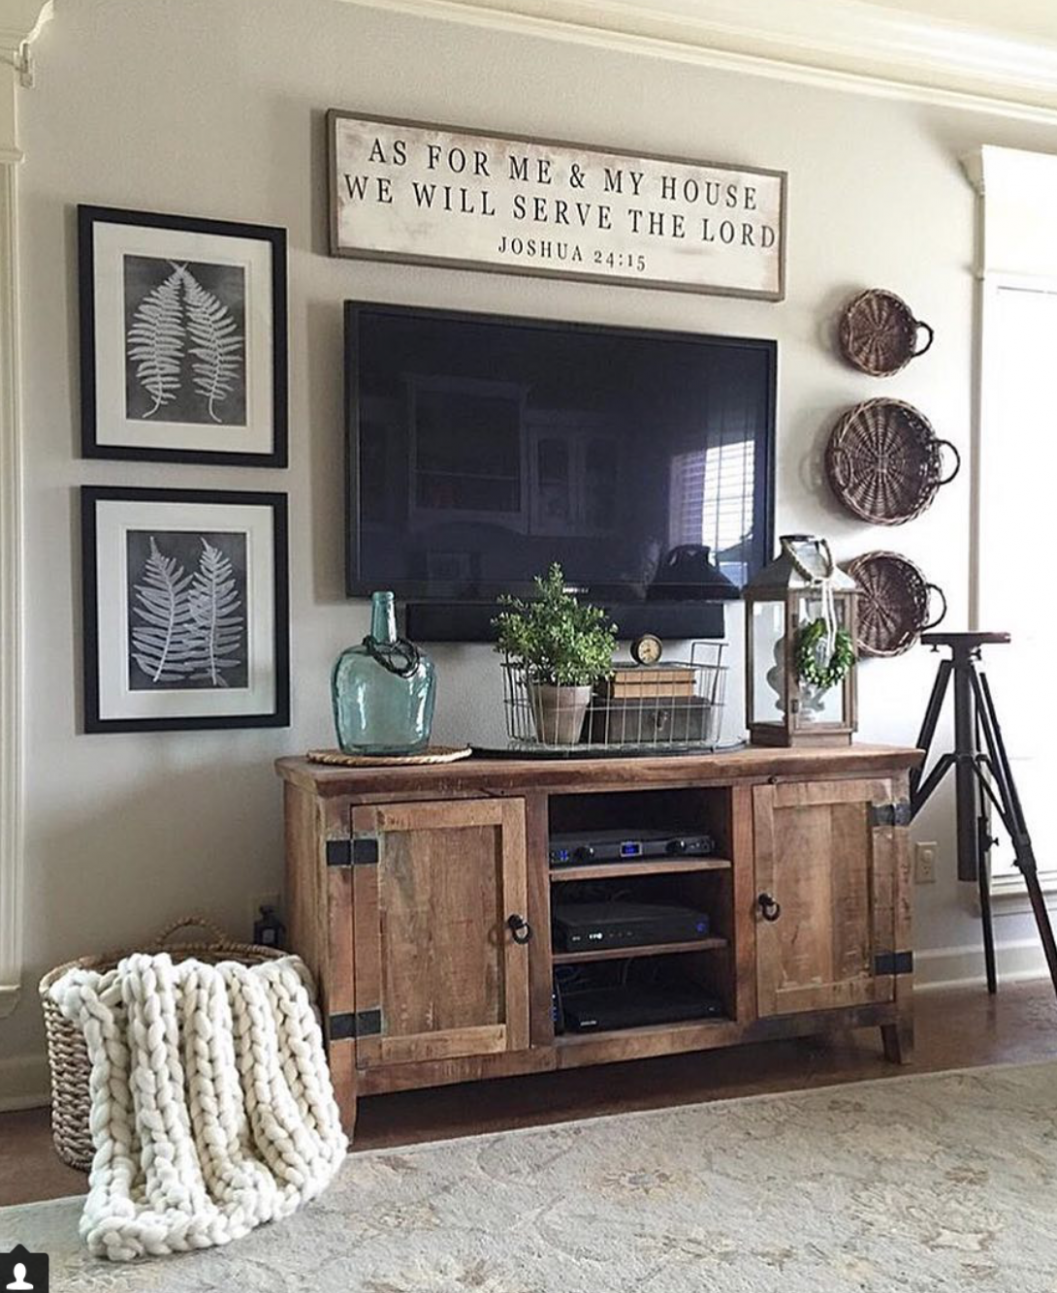 Using Baskets as Wall Decor - Beneath My Heart